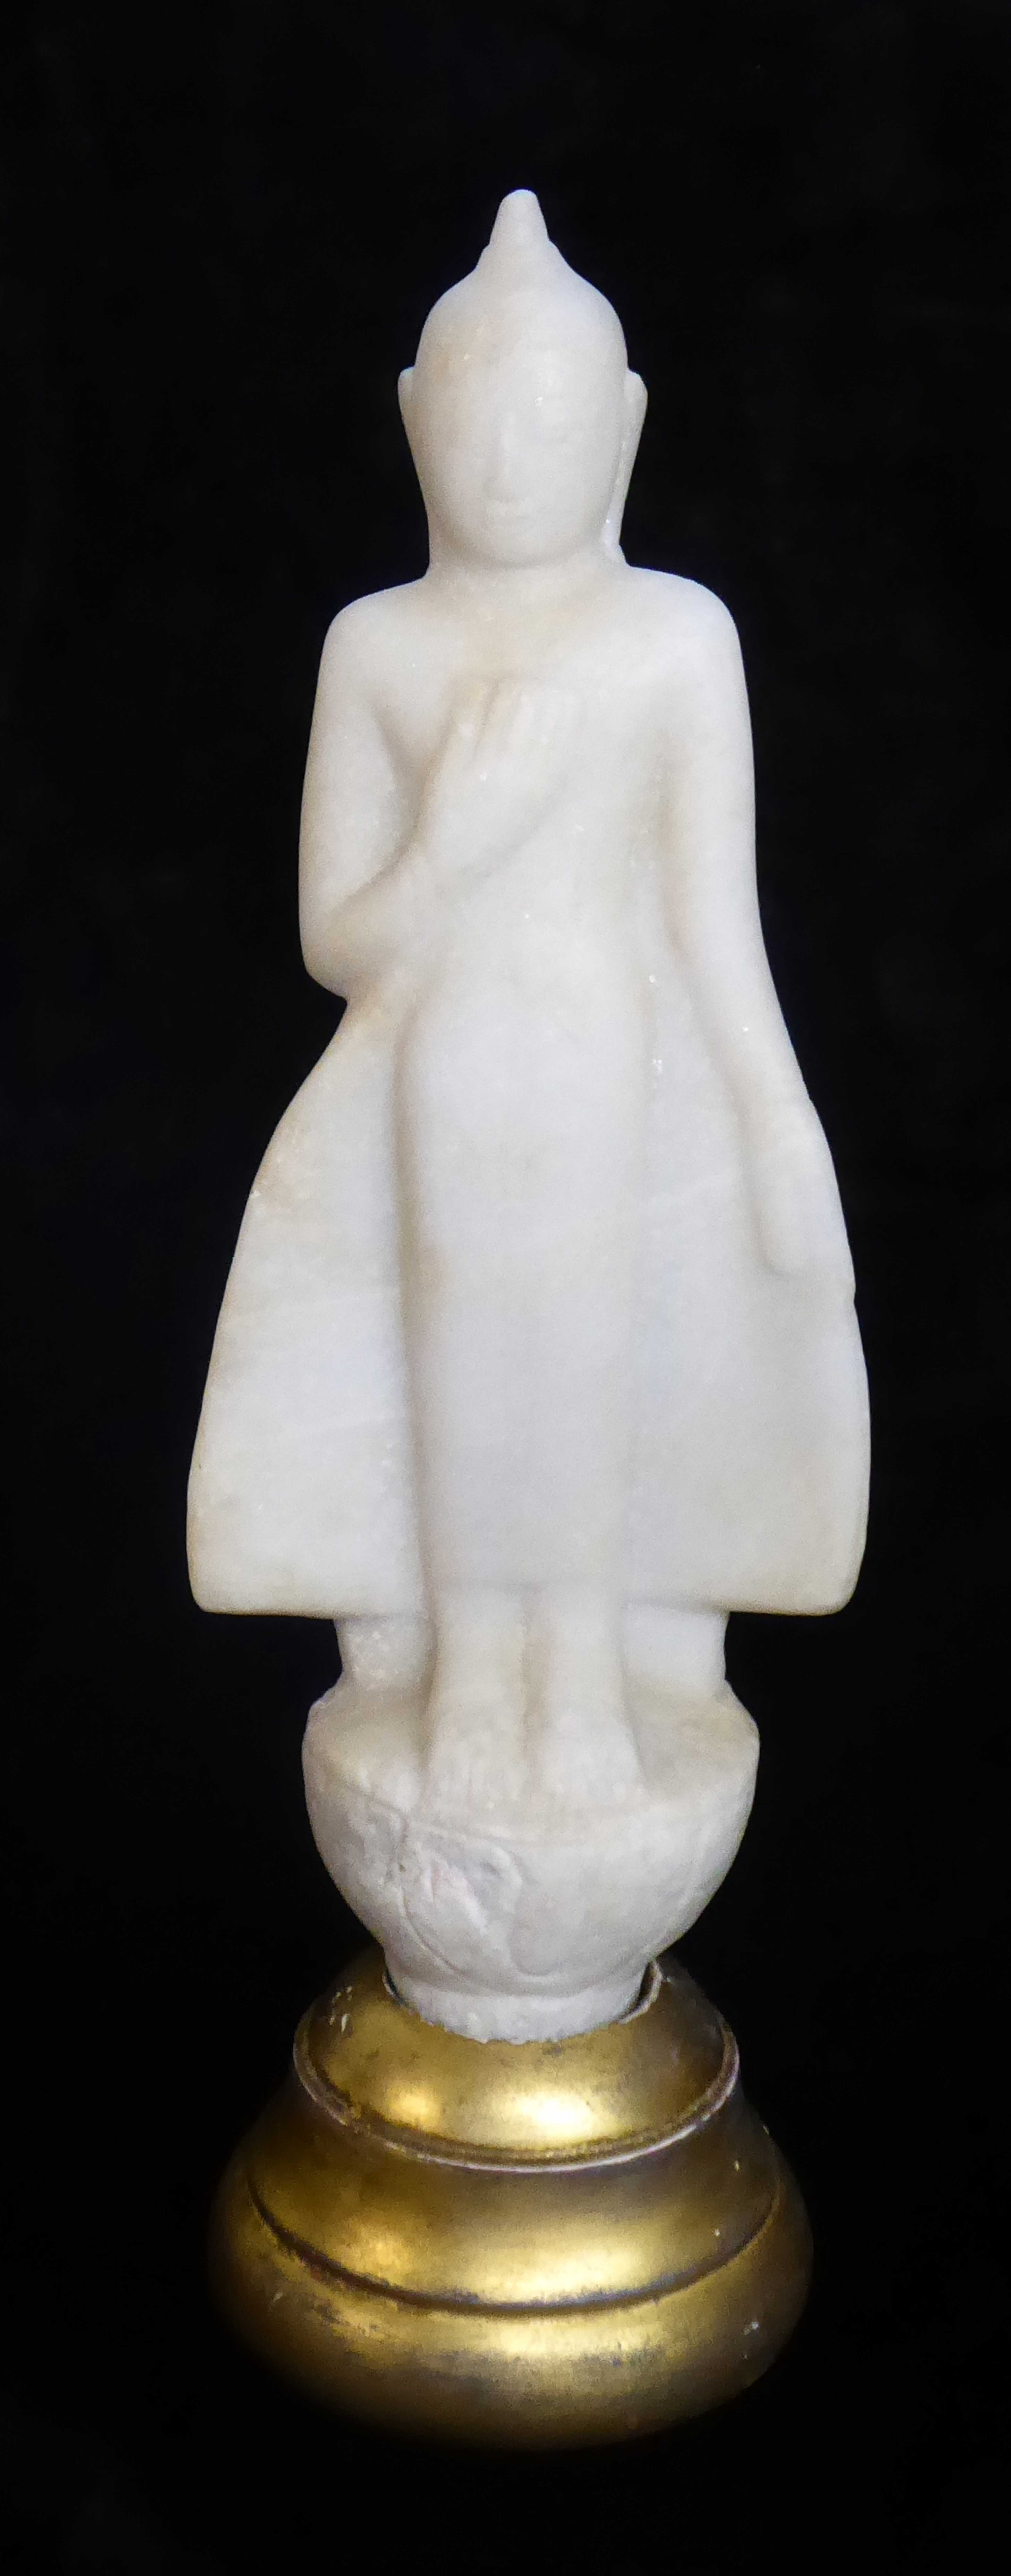 Lot 175 - AN 18th CENTURY BURMESE ORIENTAL CARVED ALABASTER BUDDHA Standing pose in gilt wood socle. Approx